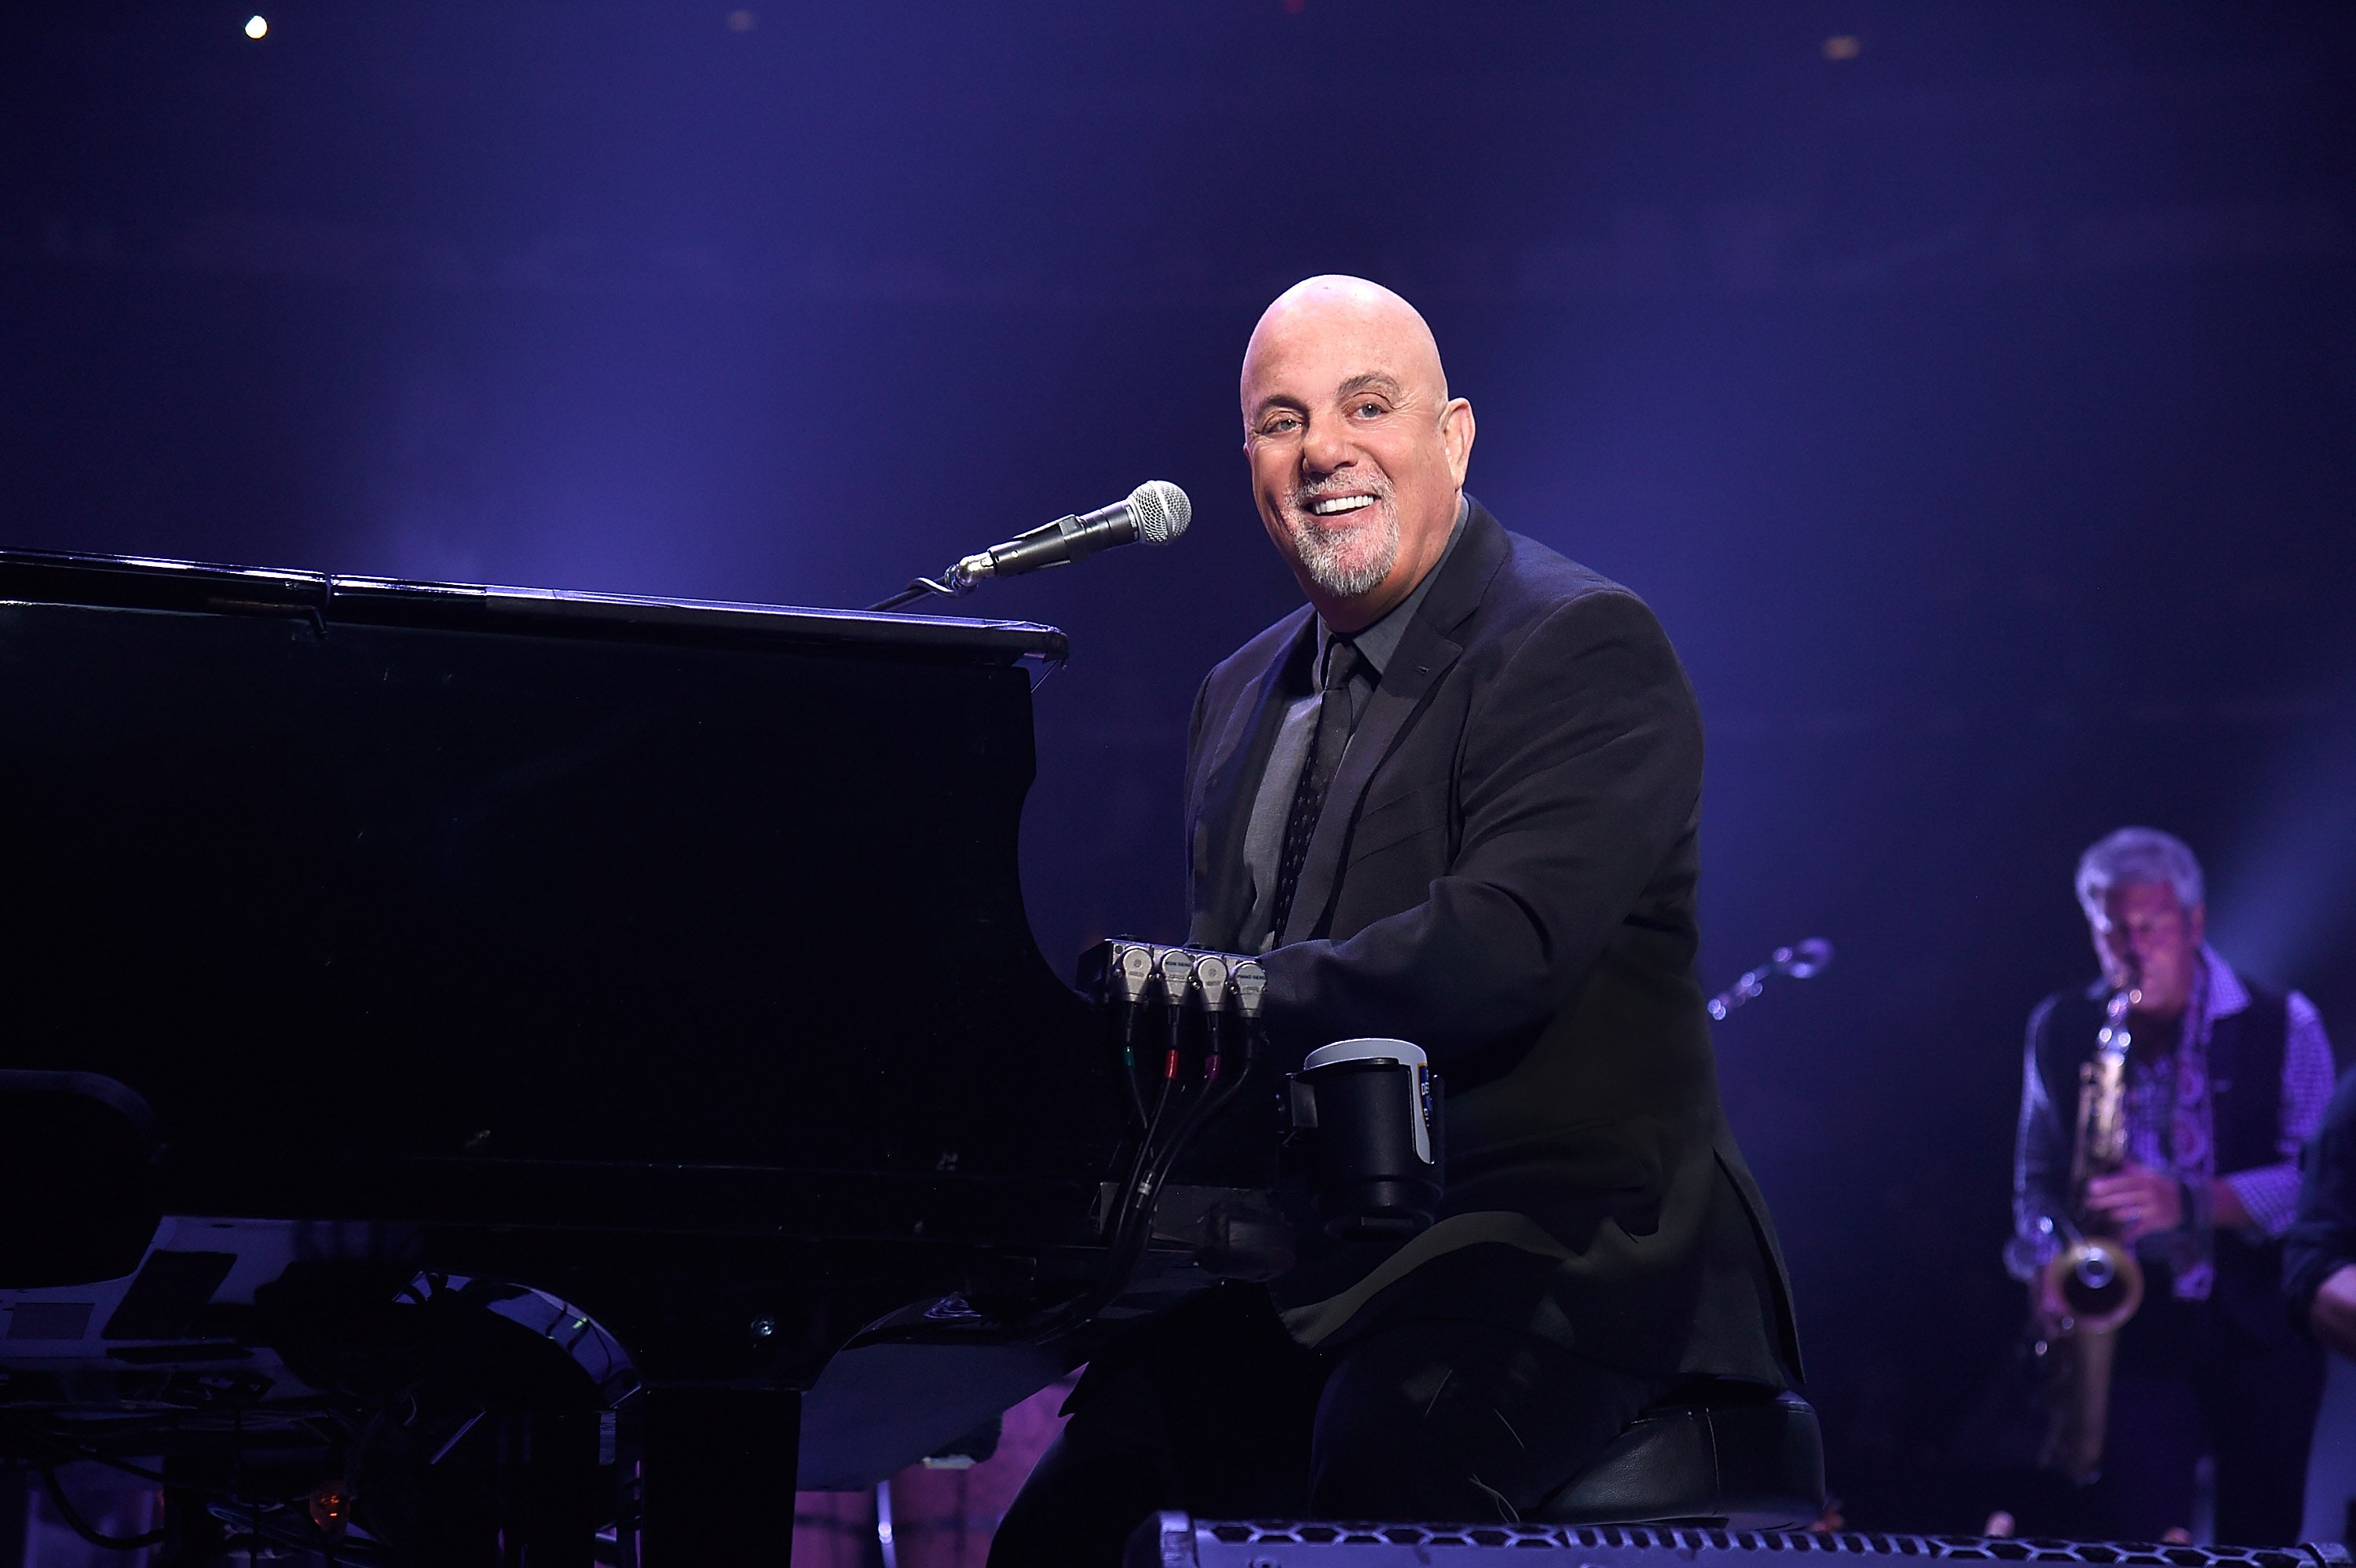 10 Songs We're Hoping To Hear At Billy Joel's London Show This Summer 🎶